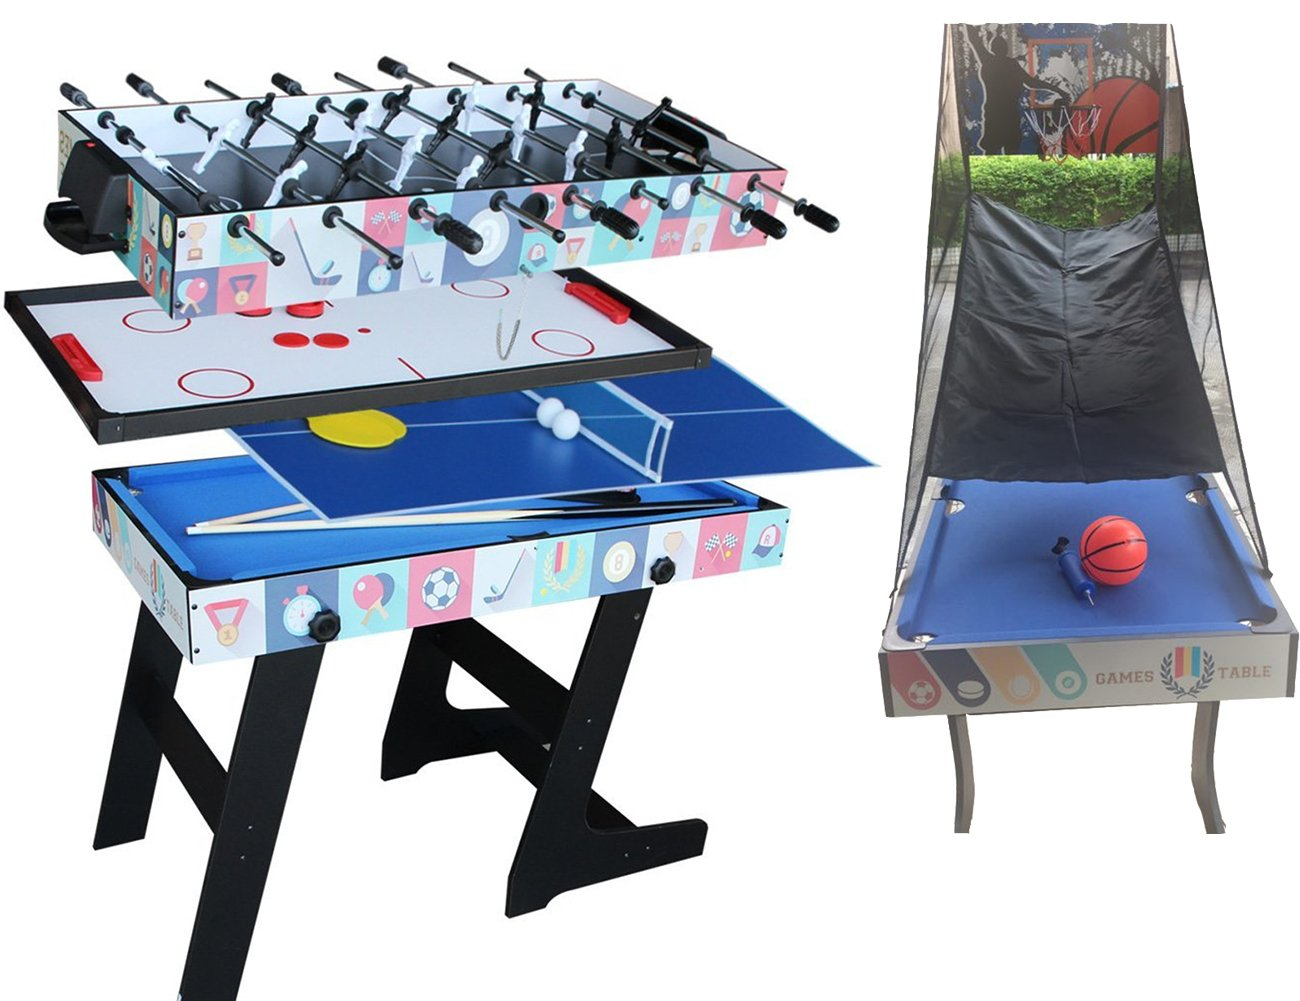 Deluxe 5 in 1 Top Game Table Tavolo Pieghevole da Ping-Pong, Glide Hockey, Foosball, Pool, Basketball Set Hz store